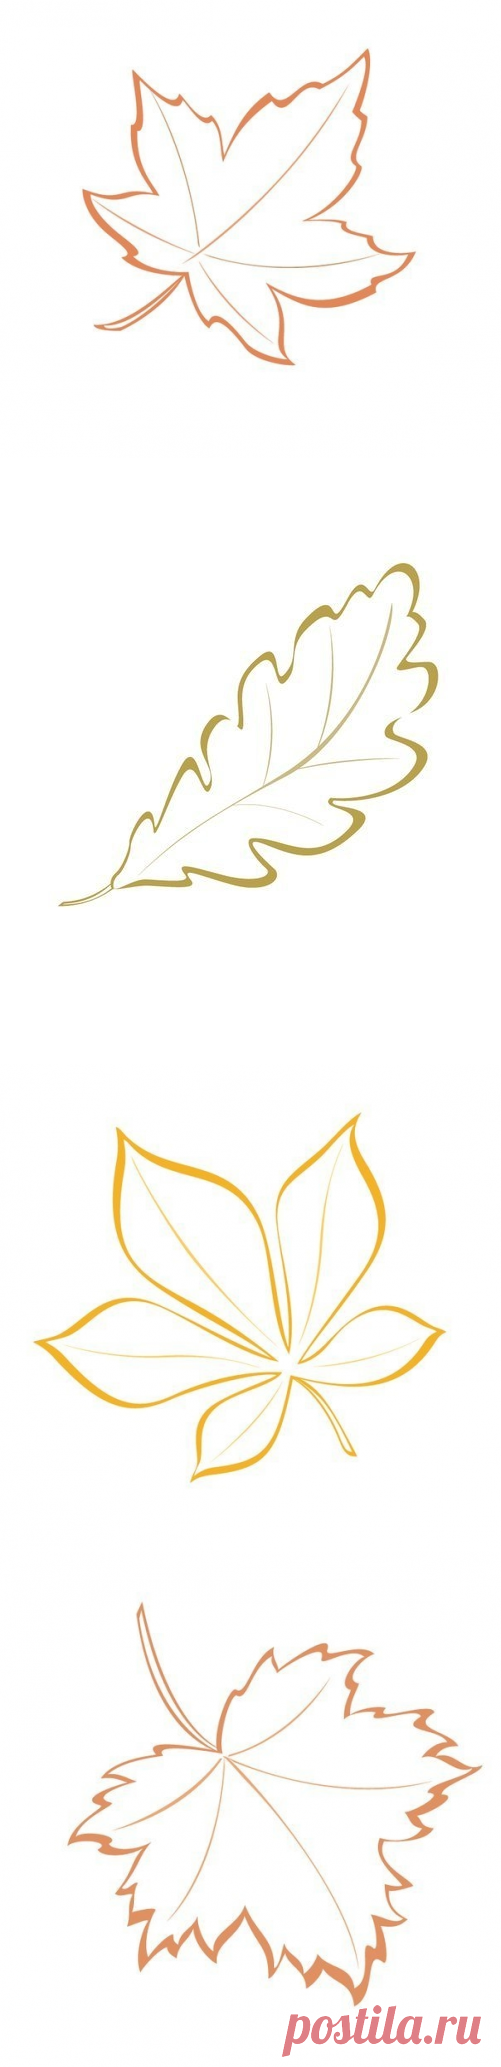 Templates of autumn leaves for creativity